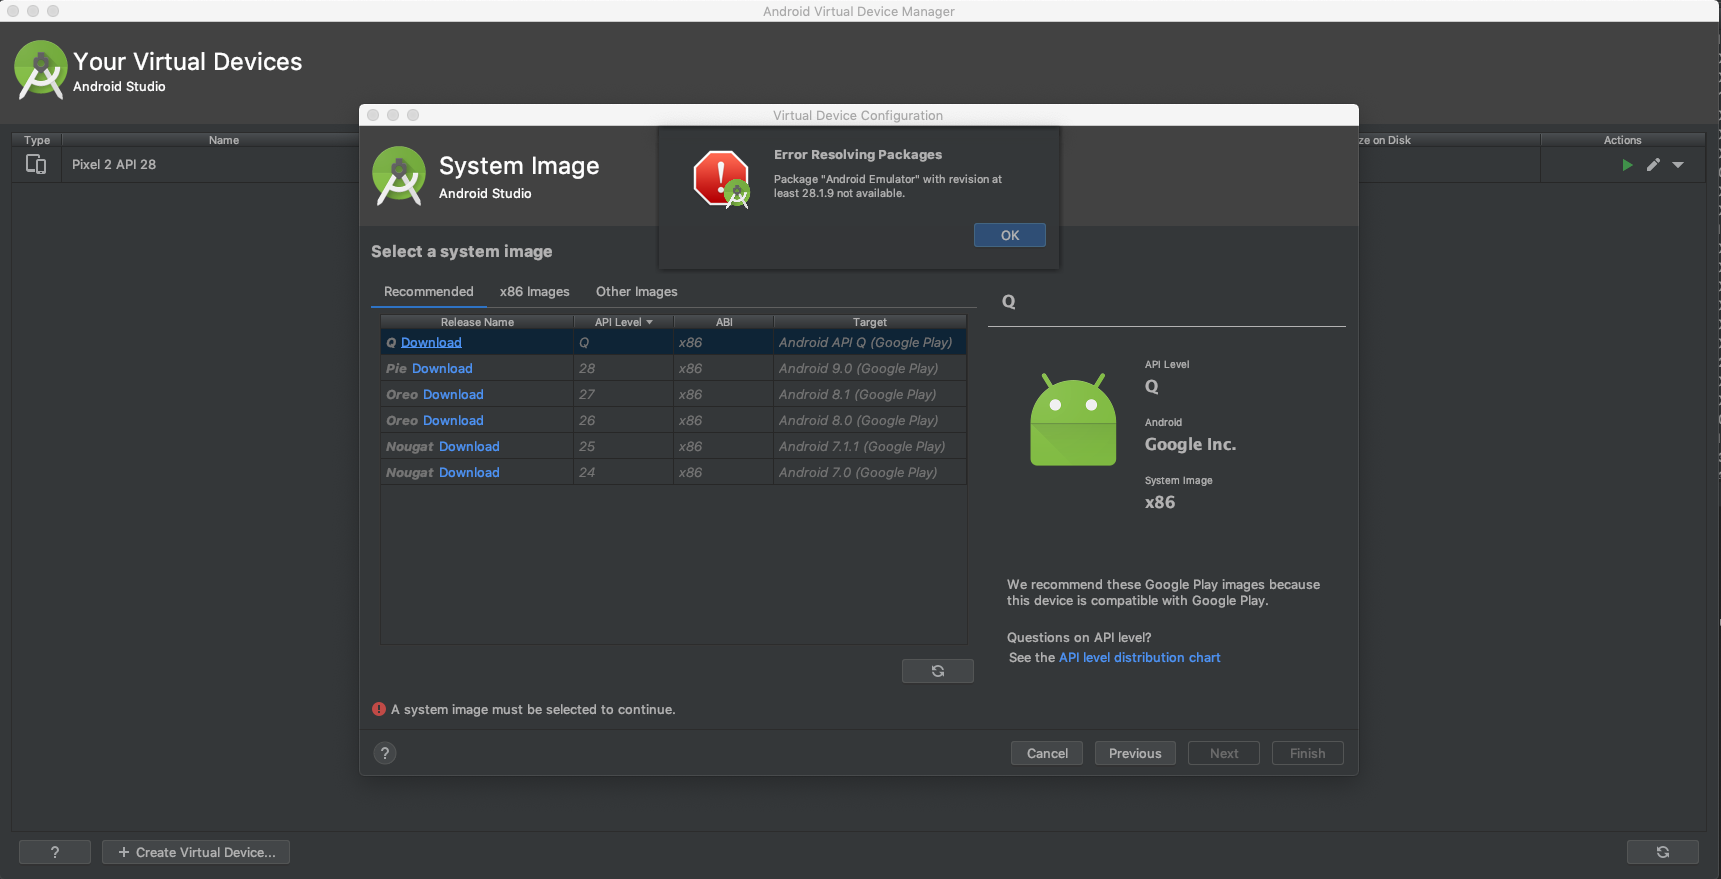 Android Studio — Unable to download Q release